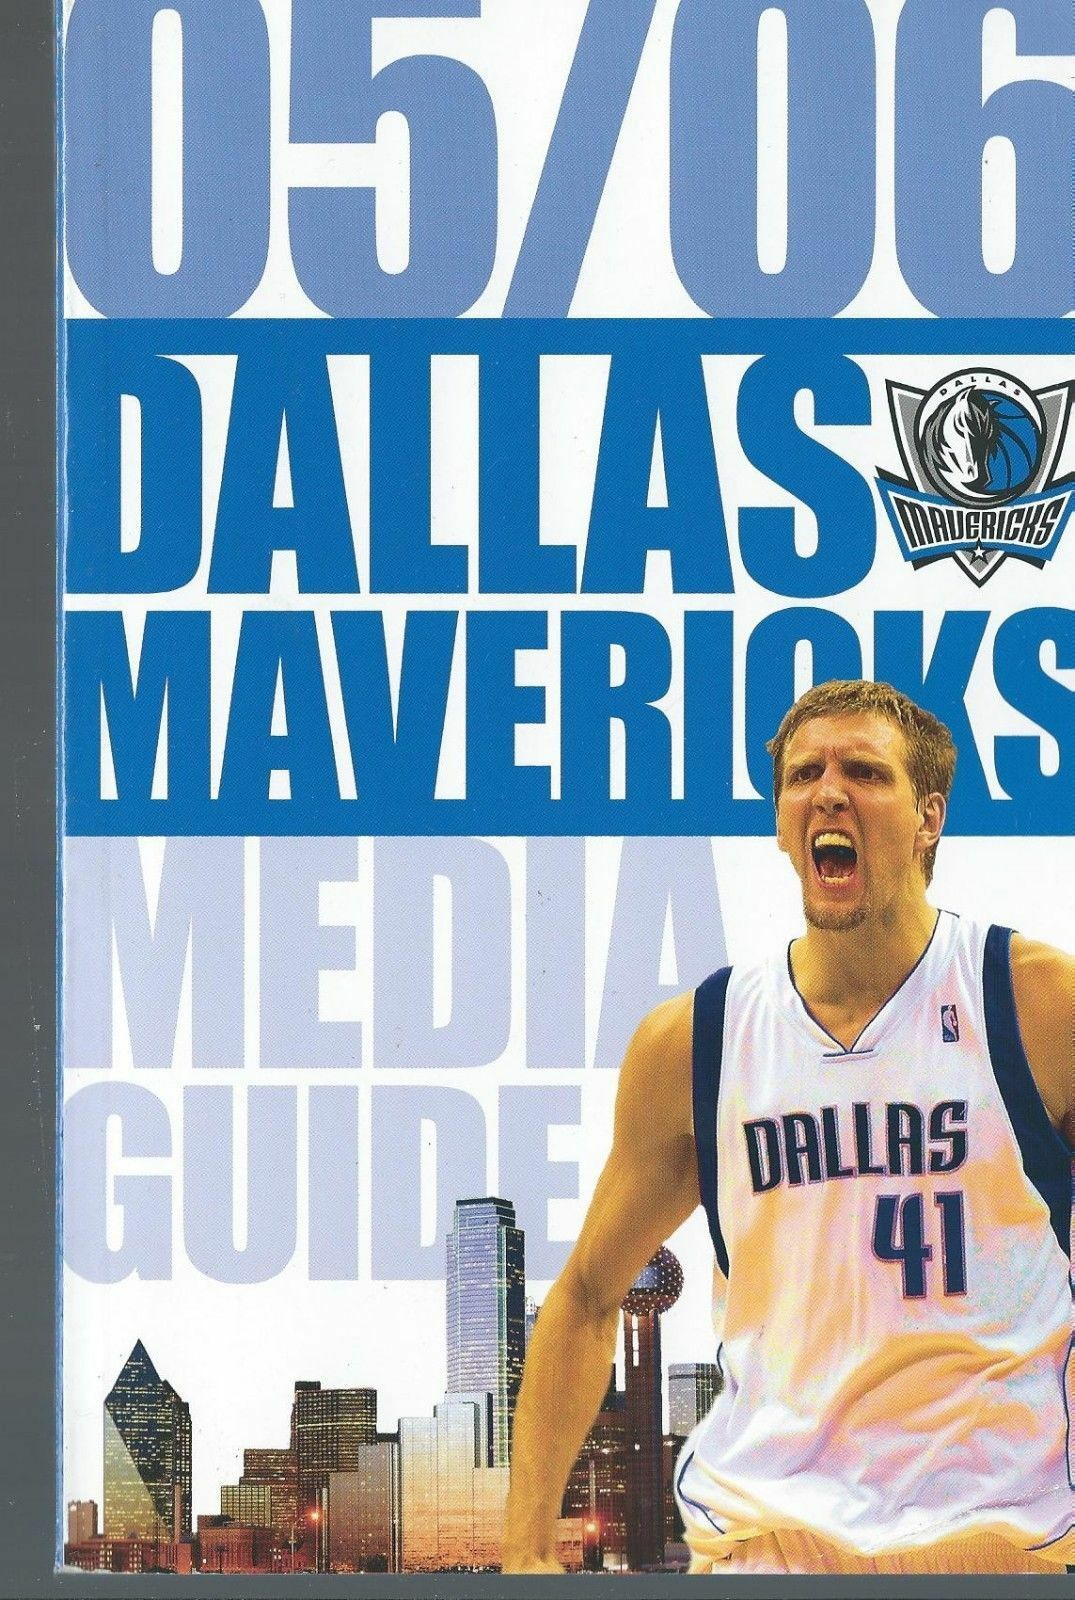 2005/2006 Dallas Mavericks Official NBA Basketball Media Guide - Dirk Nowitzki